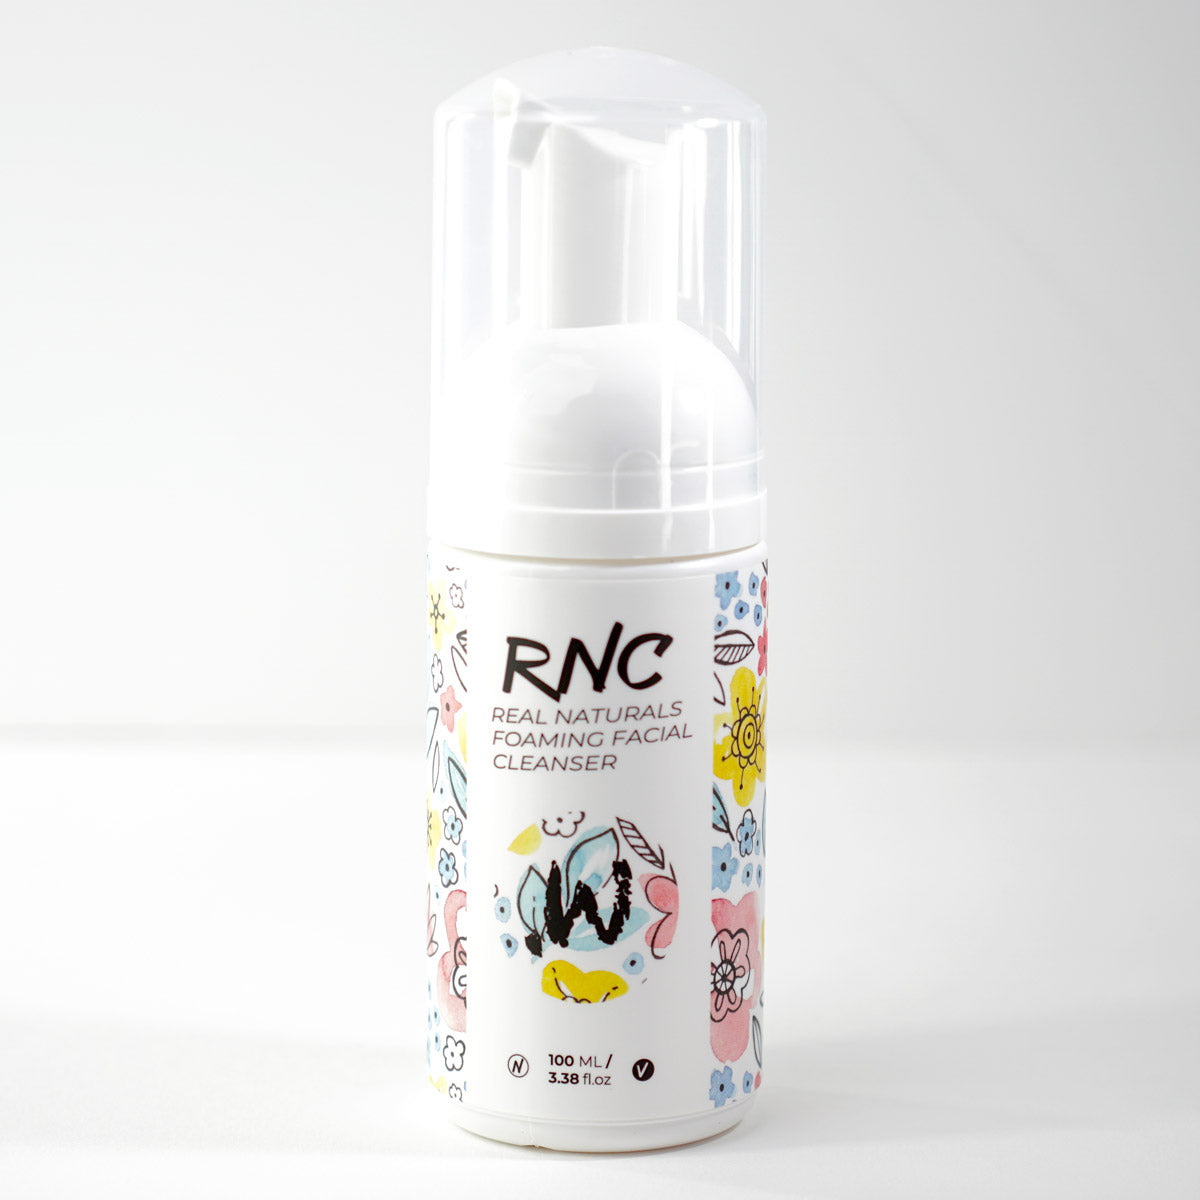 Real Naturals Cleanse - 'RNC' Foaming Facial Cleanser